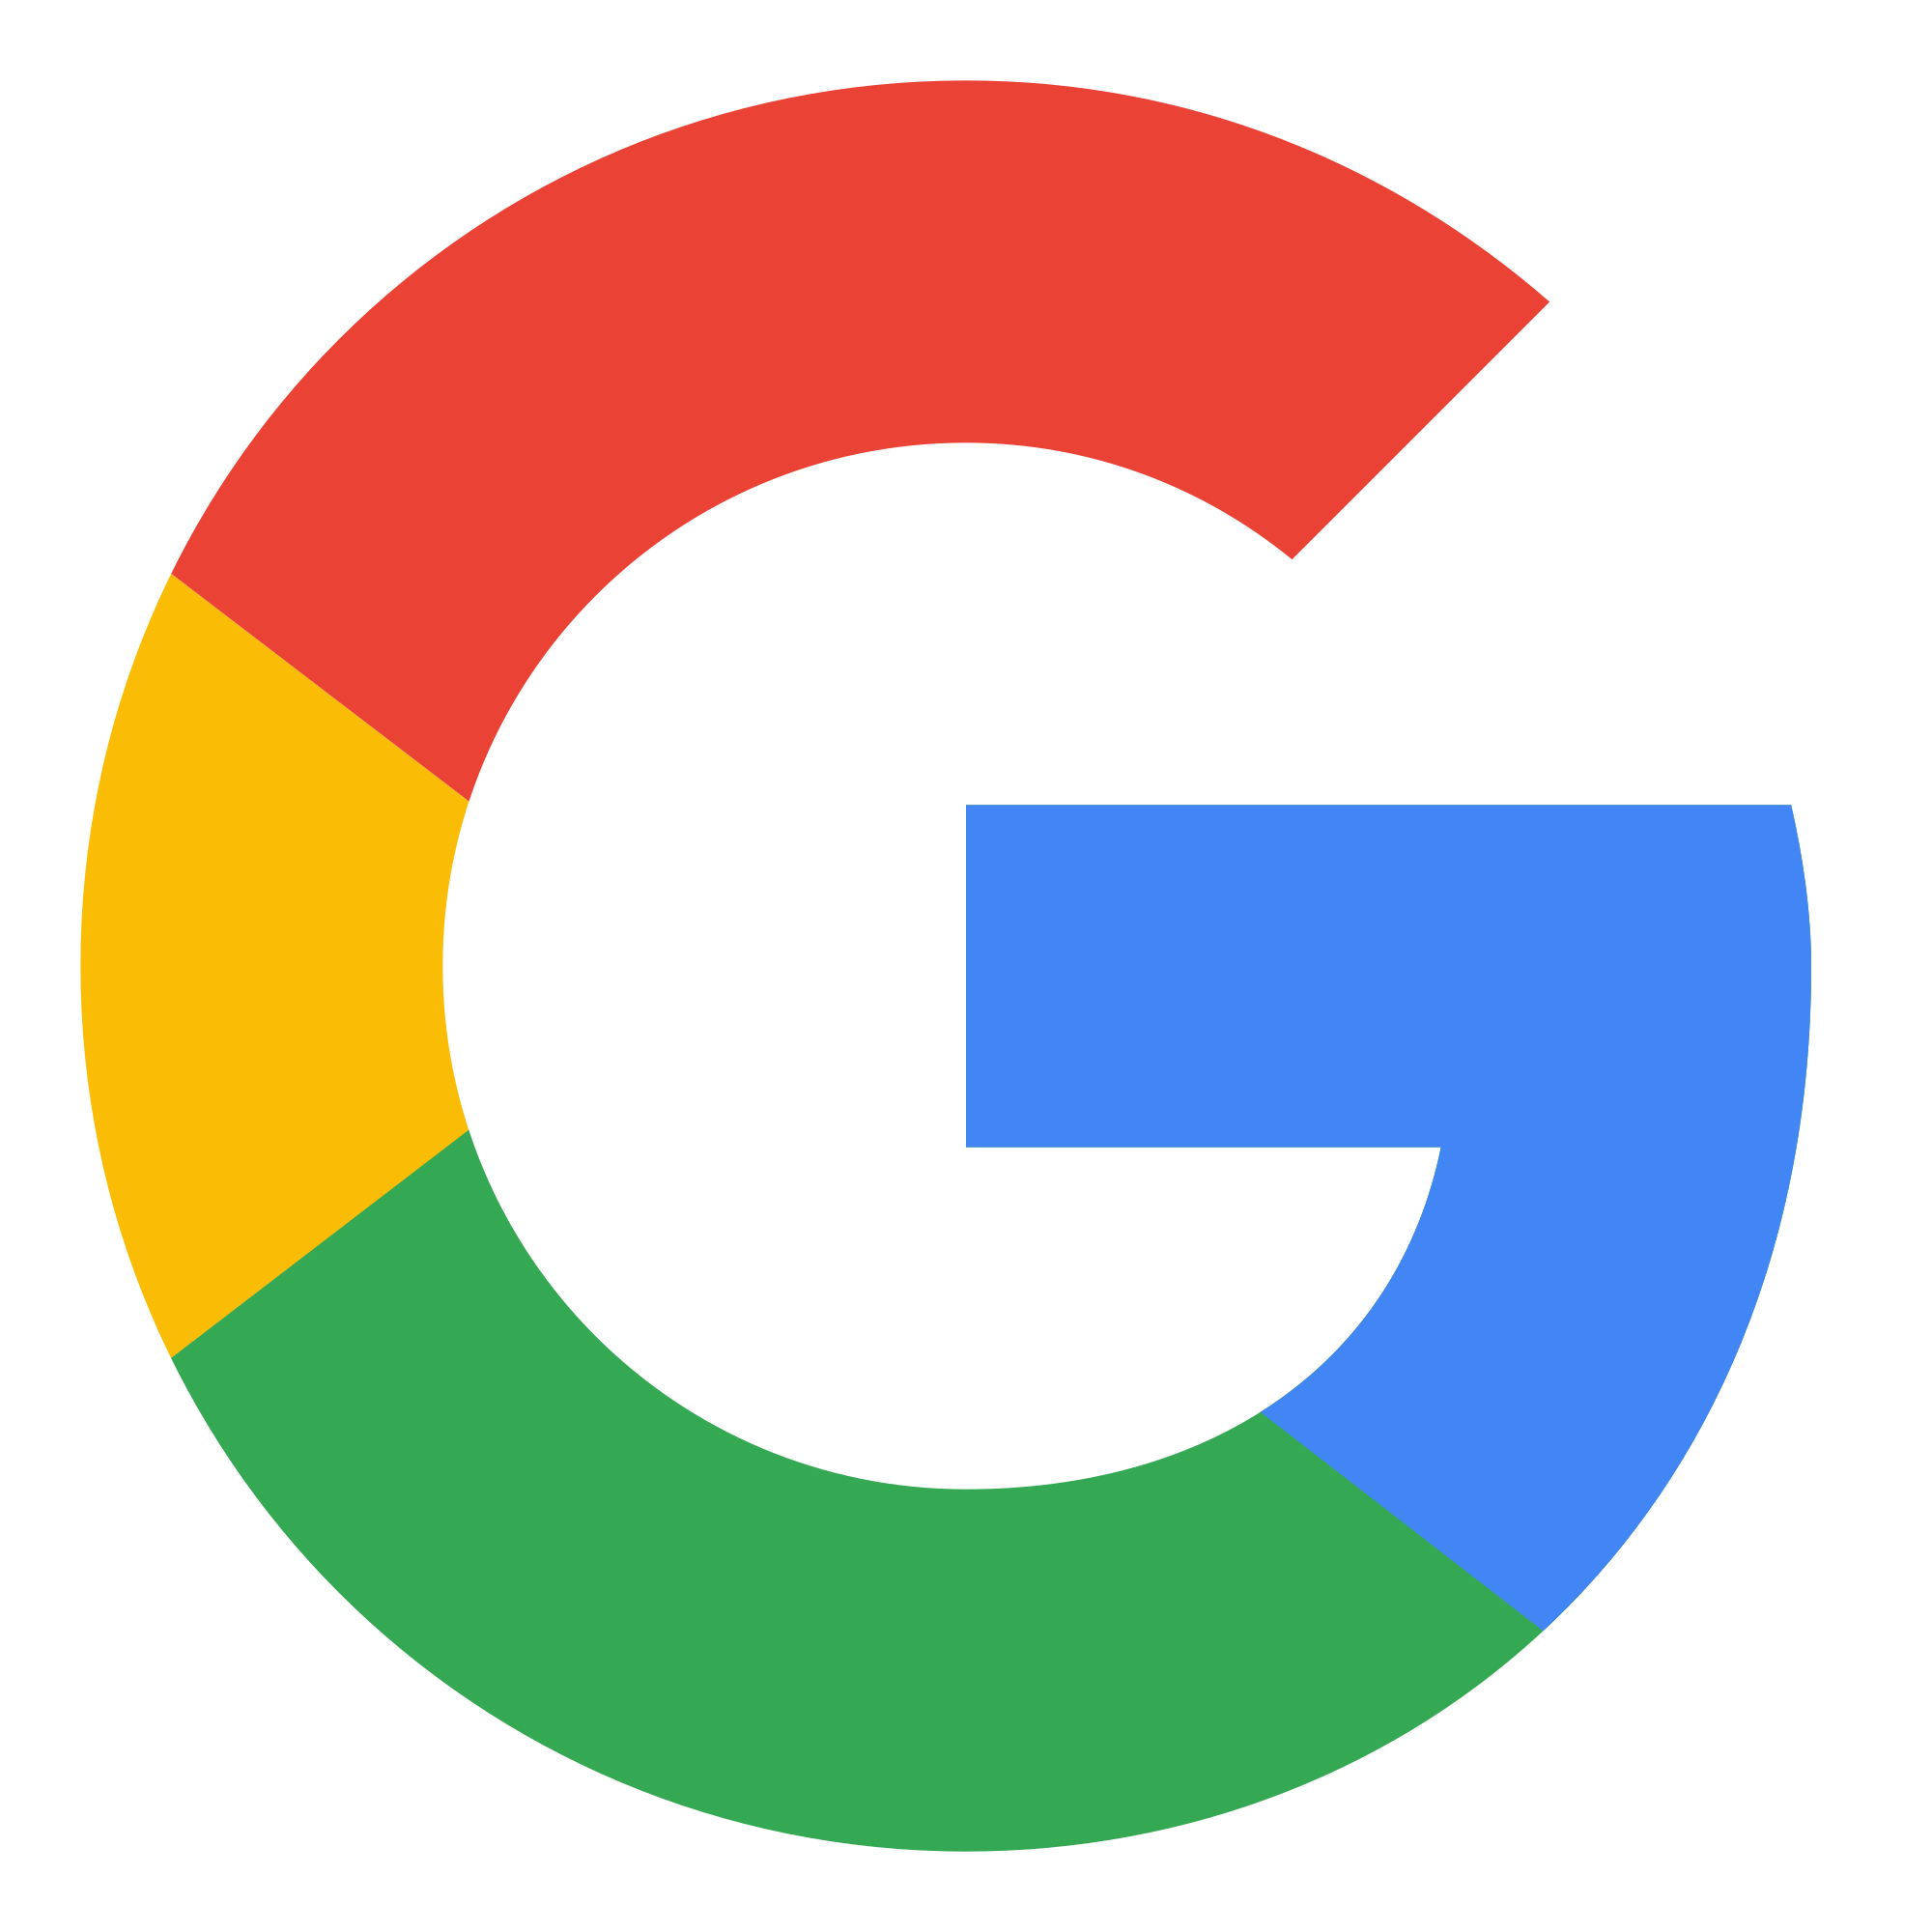 Google icon in four colors, red, yellow, green, and blue